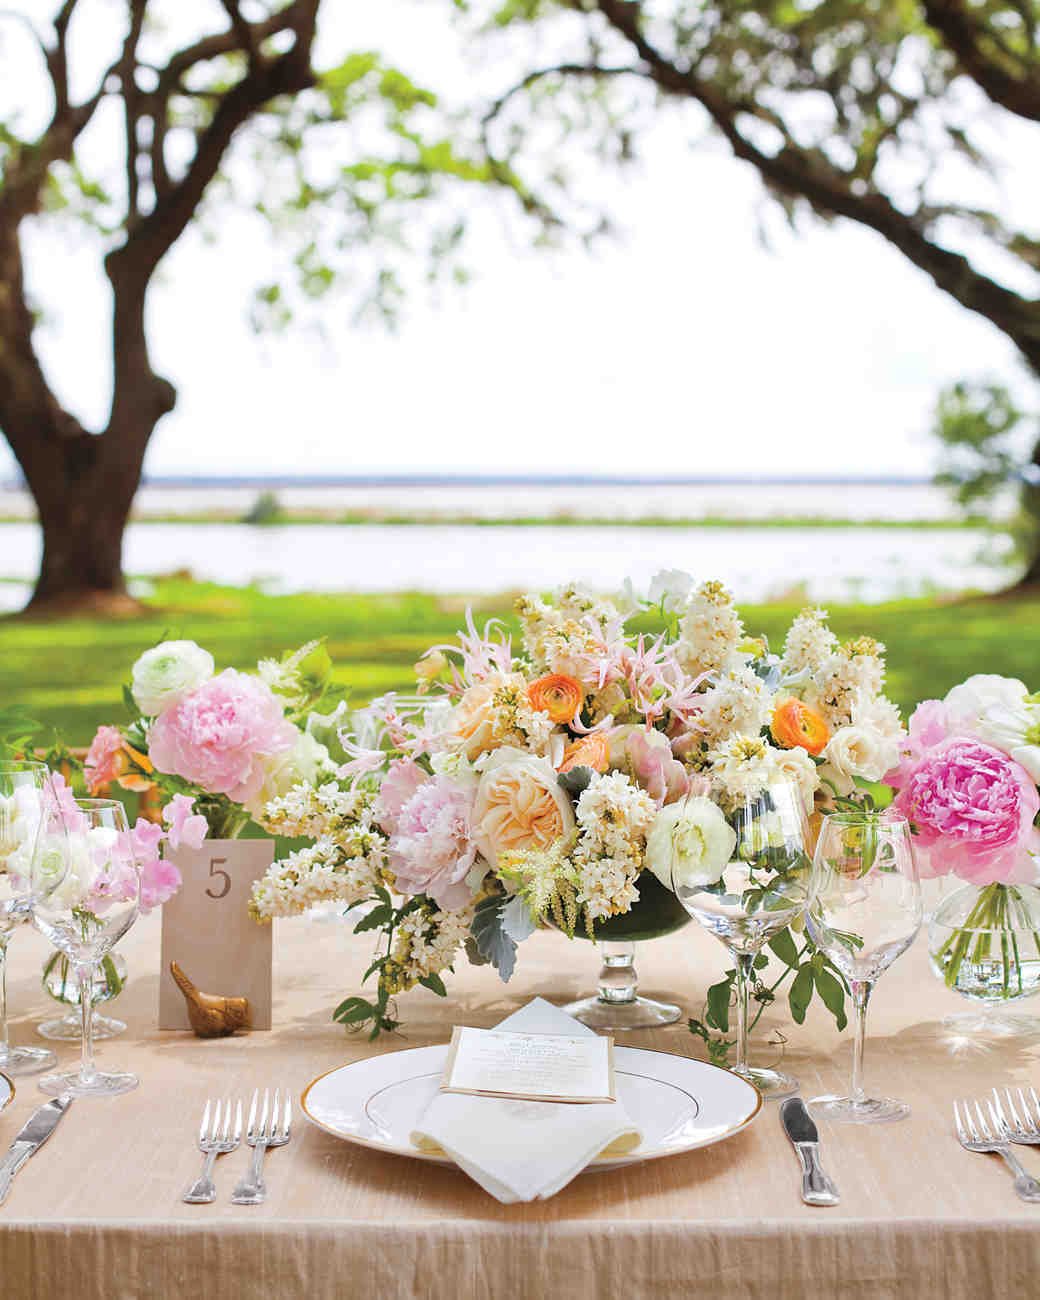 Martha Stewart Weddings: 63 Top Floral Designers To Book For Your Wedding